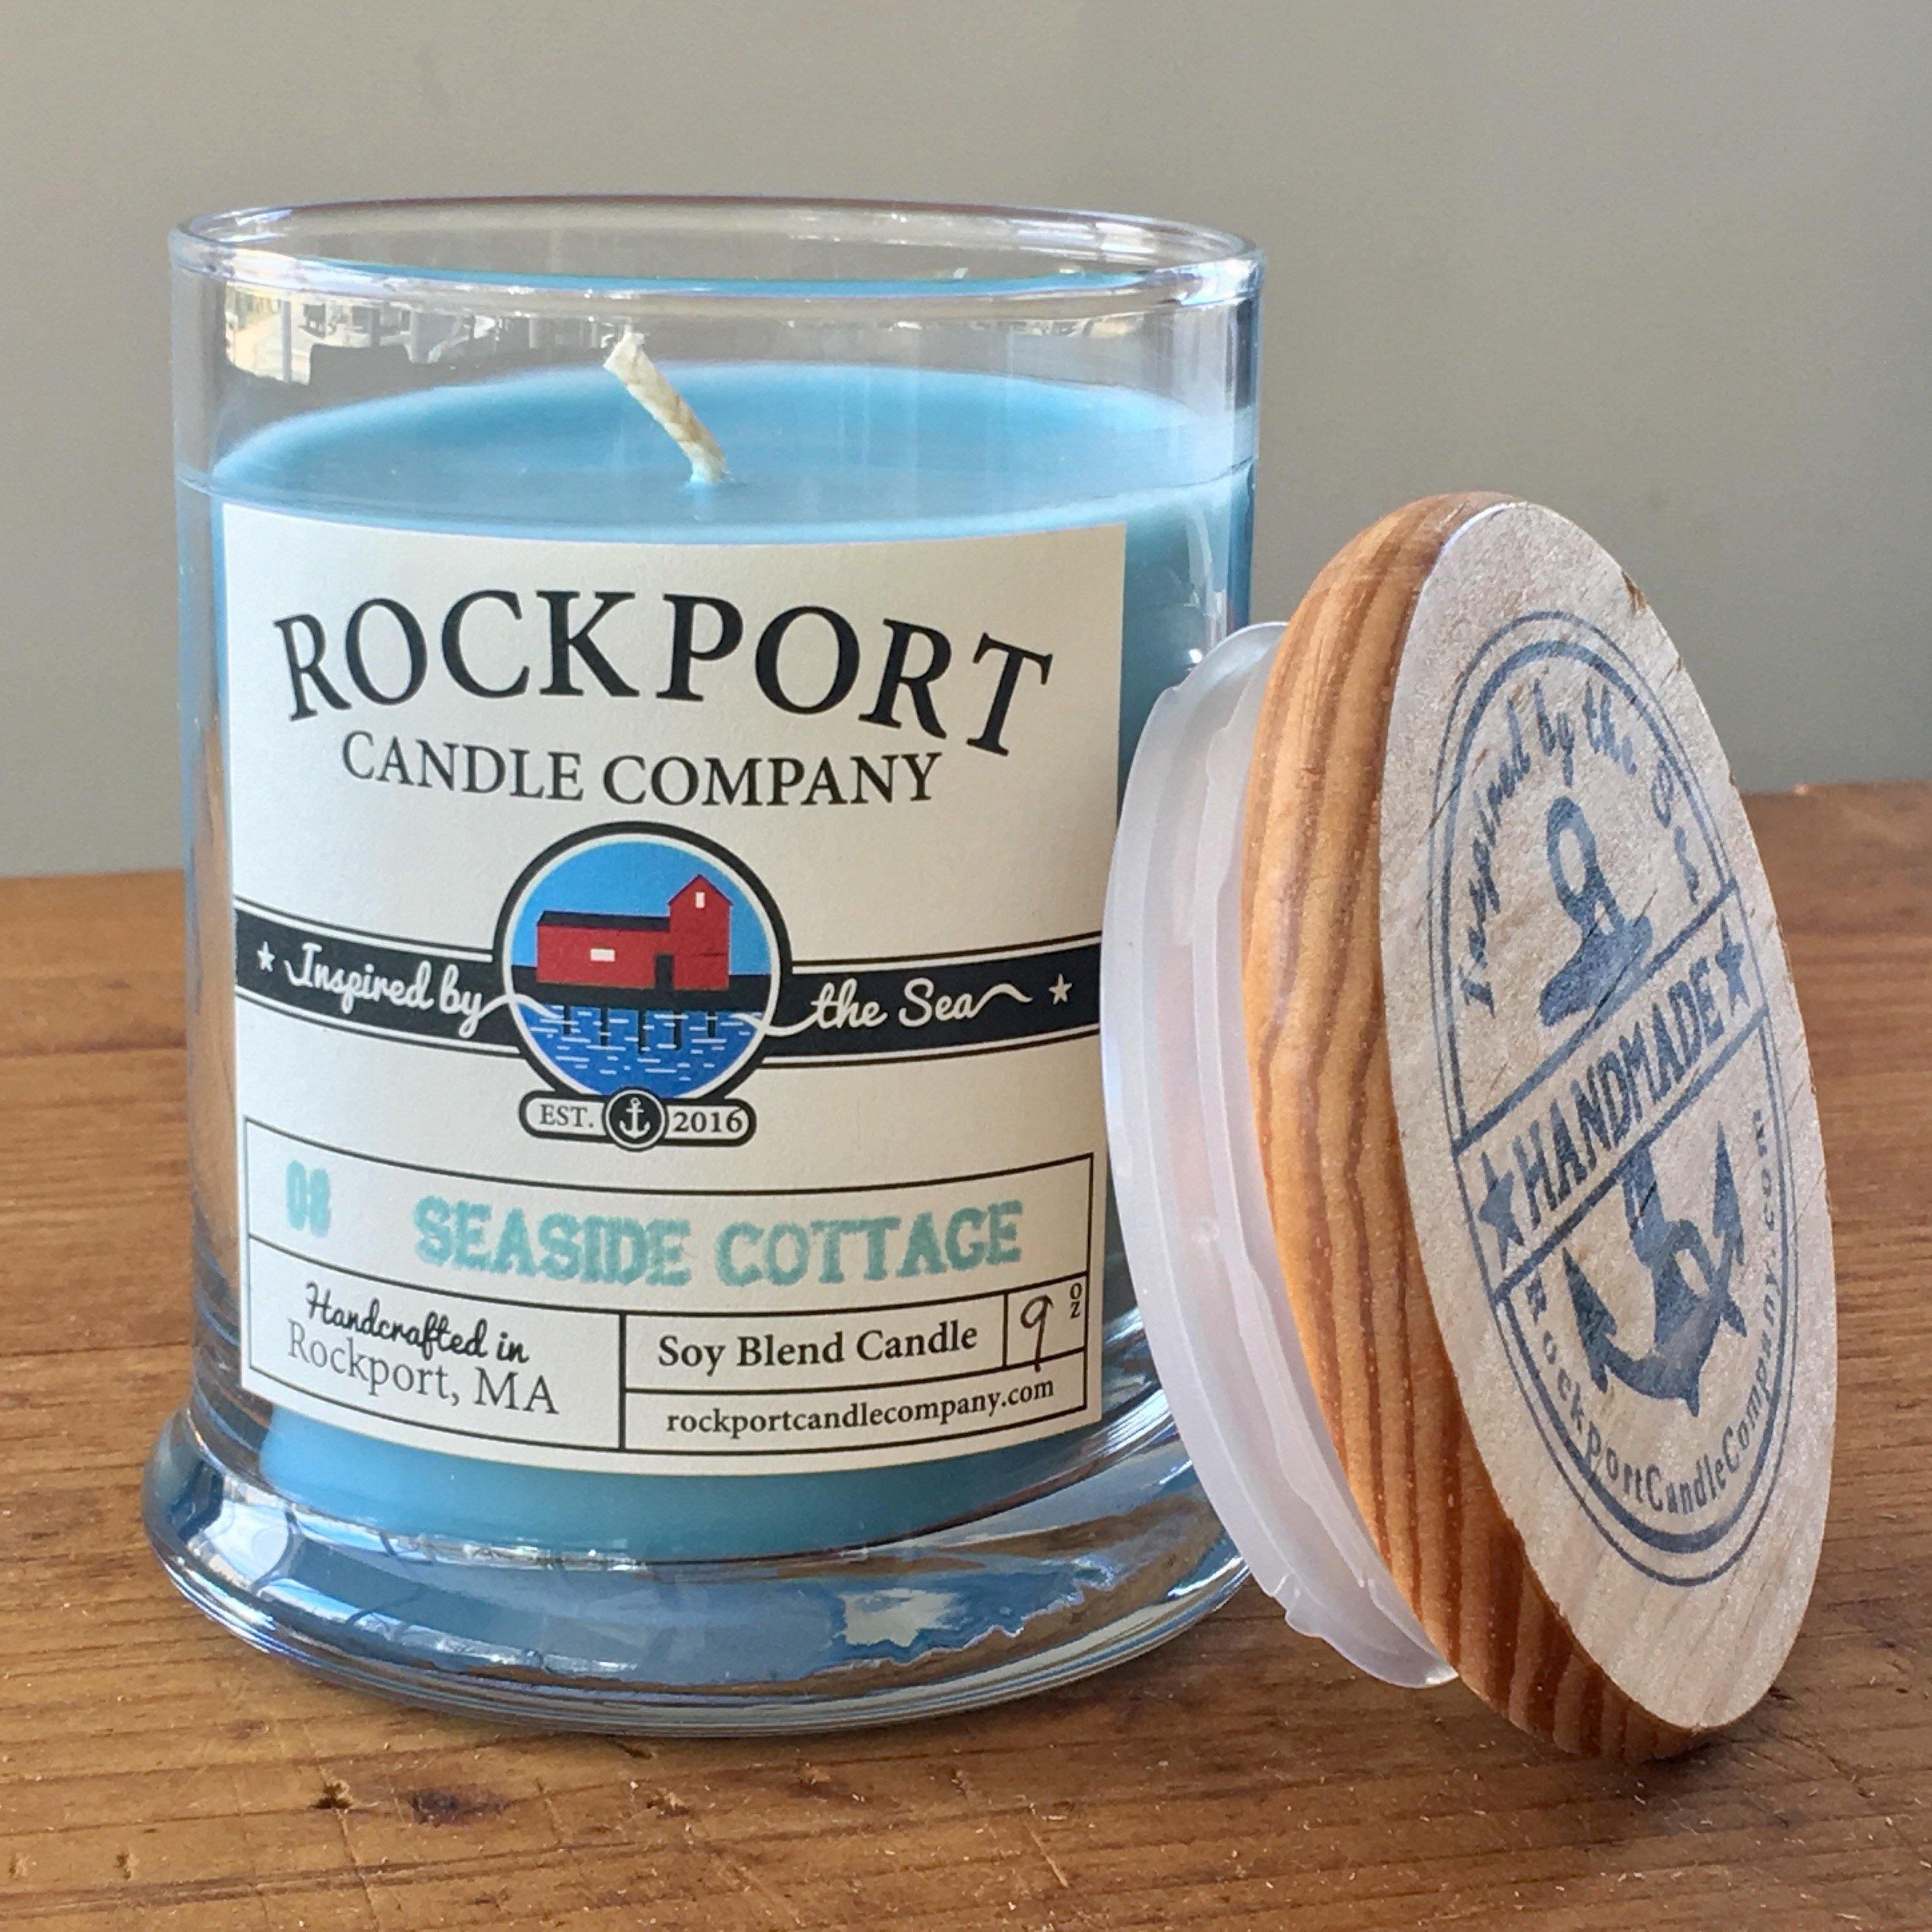 08 Seaside Cottage Candle Rockport Candle Company